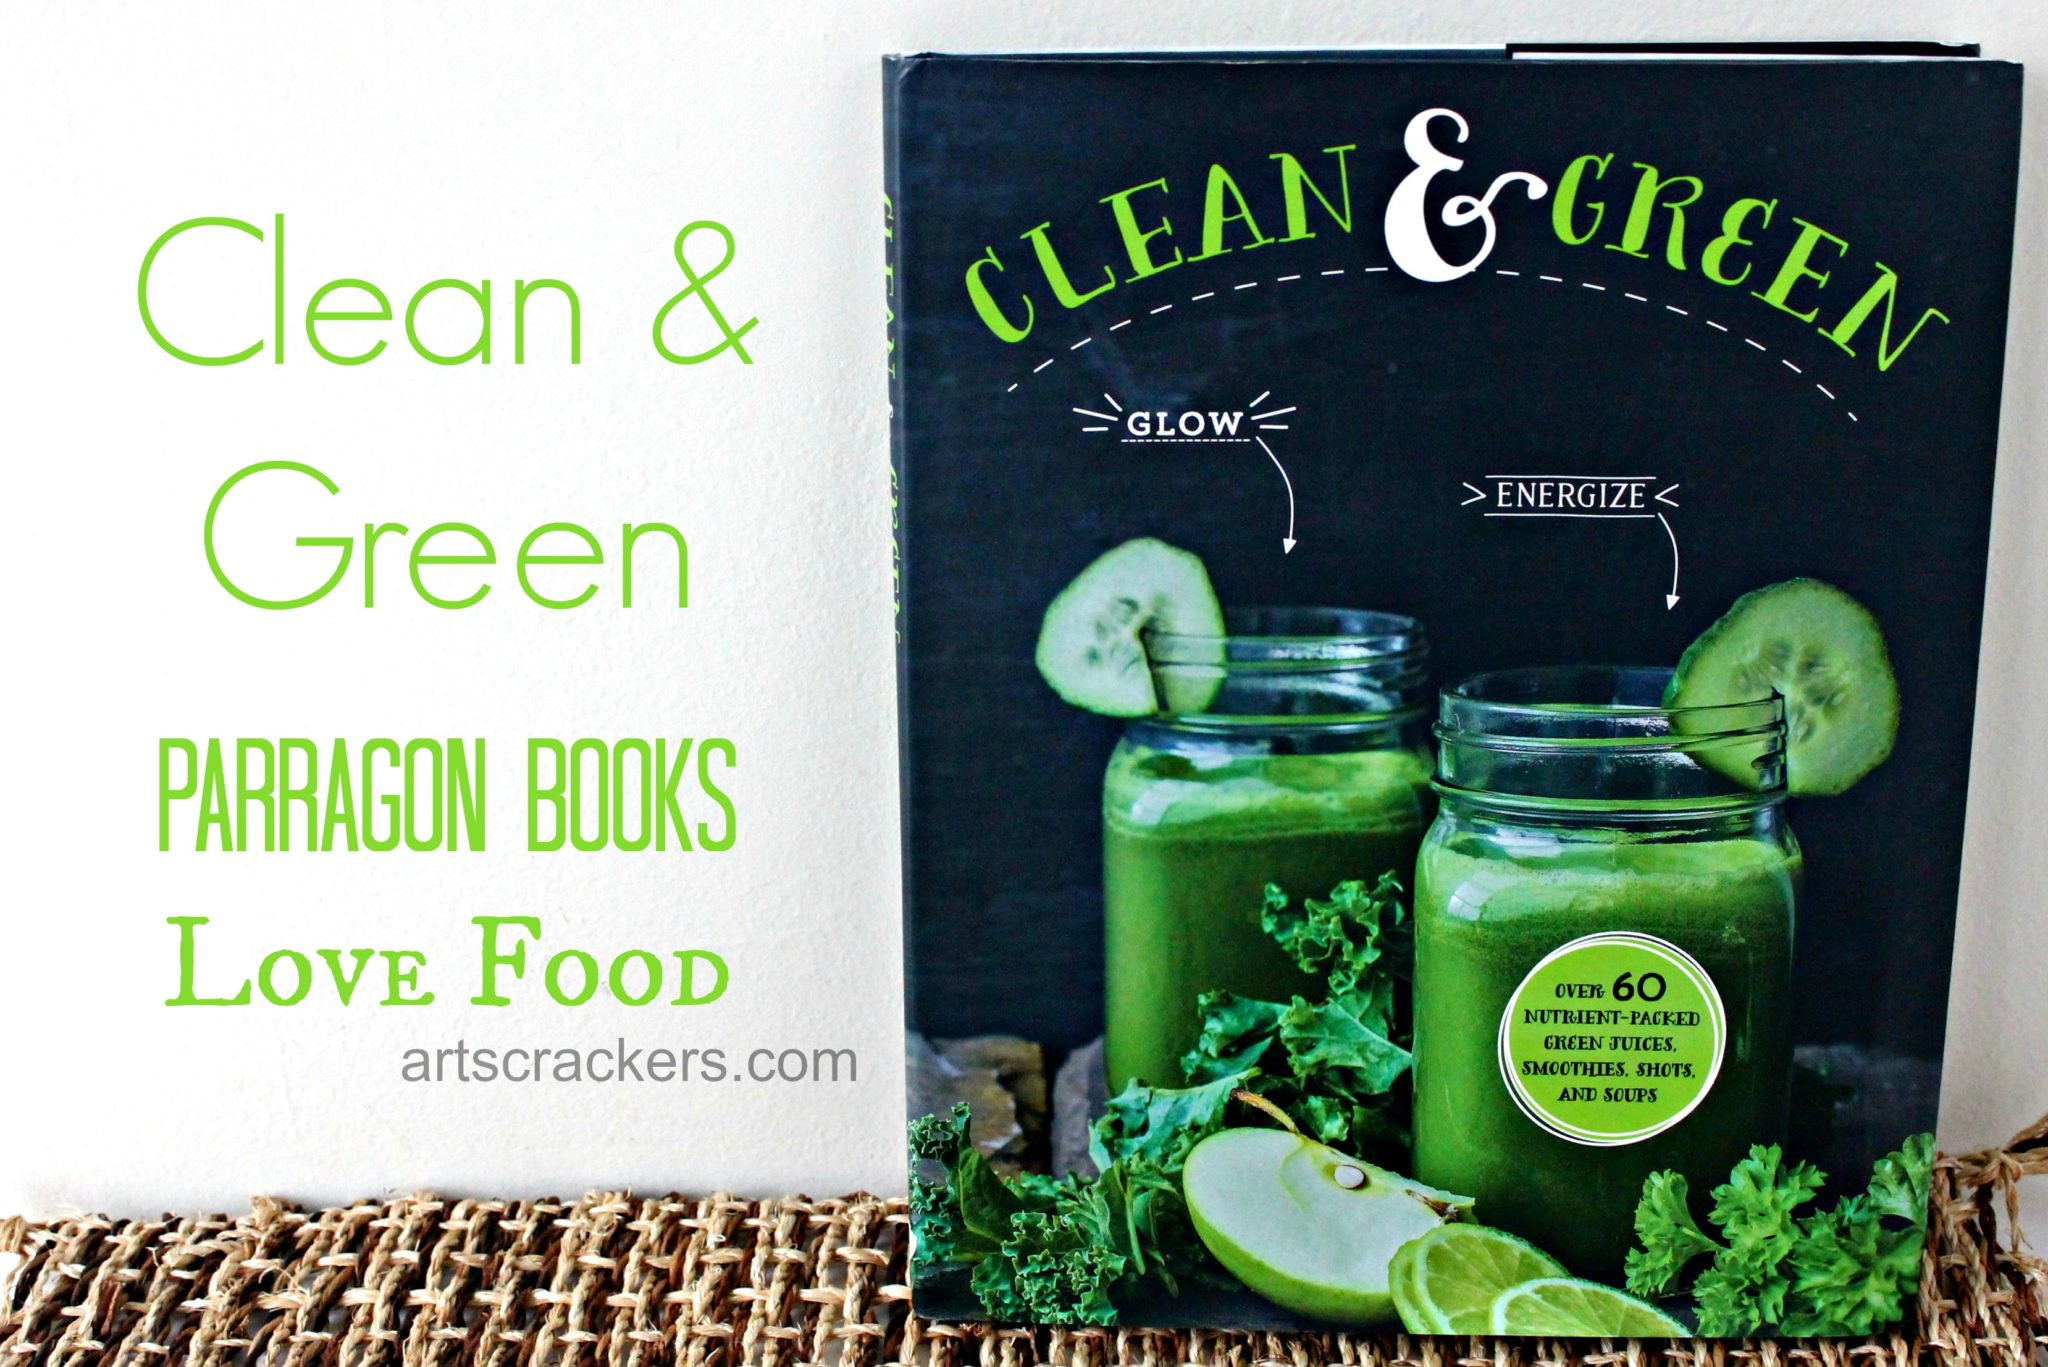 Clean and Green Parragon Books. Click the picture to read the review.